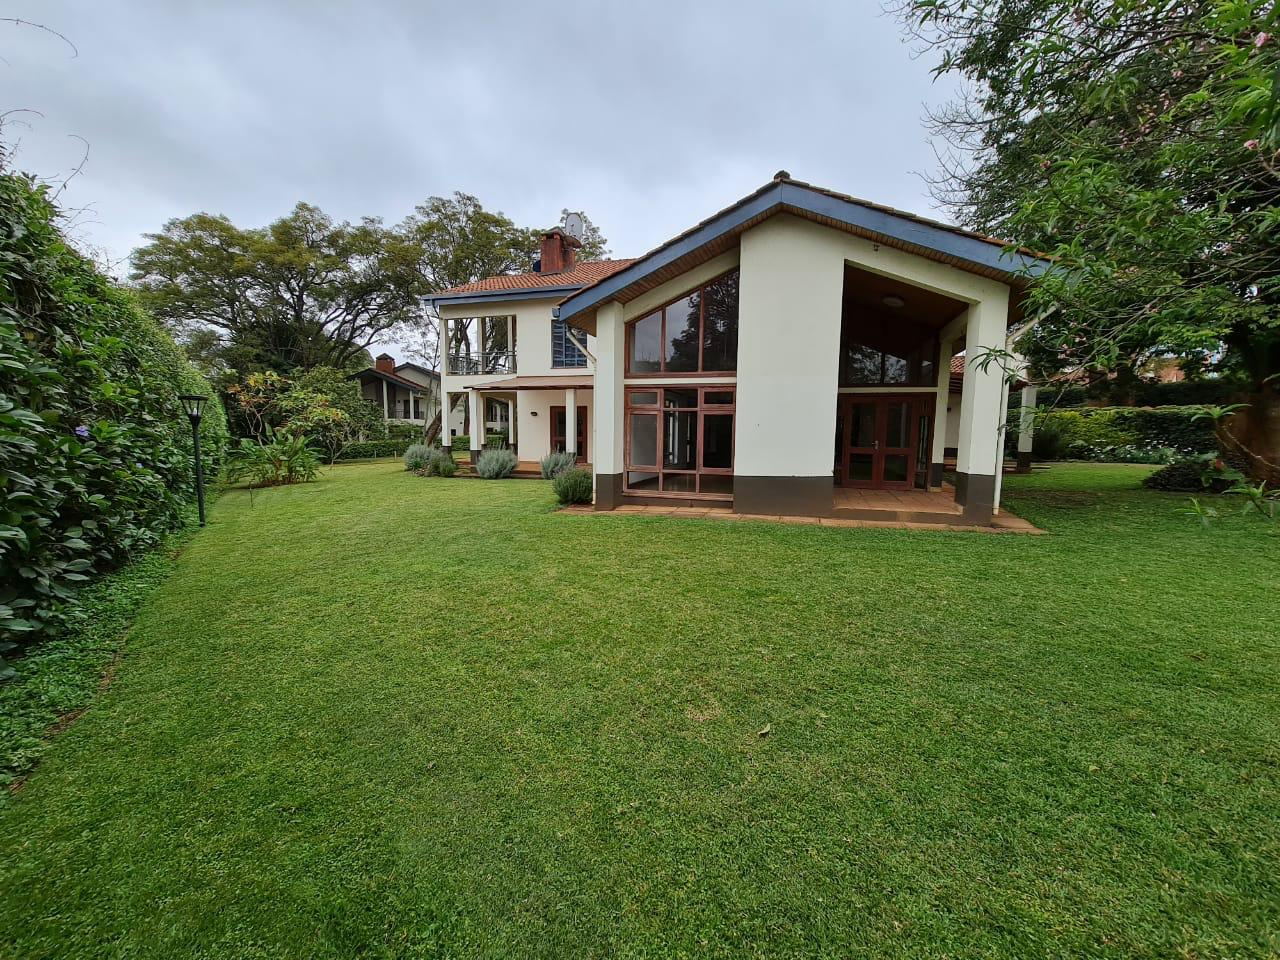 Lovely 4 bedroom Townhouse plus dsq for rent at Ksh330k in Westlands, ensuite, family room, office, detached dsq for 2, very well maintained and more amenities